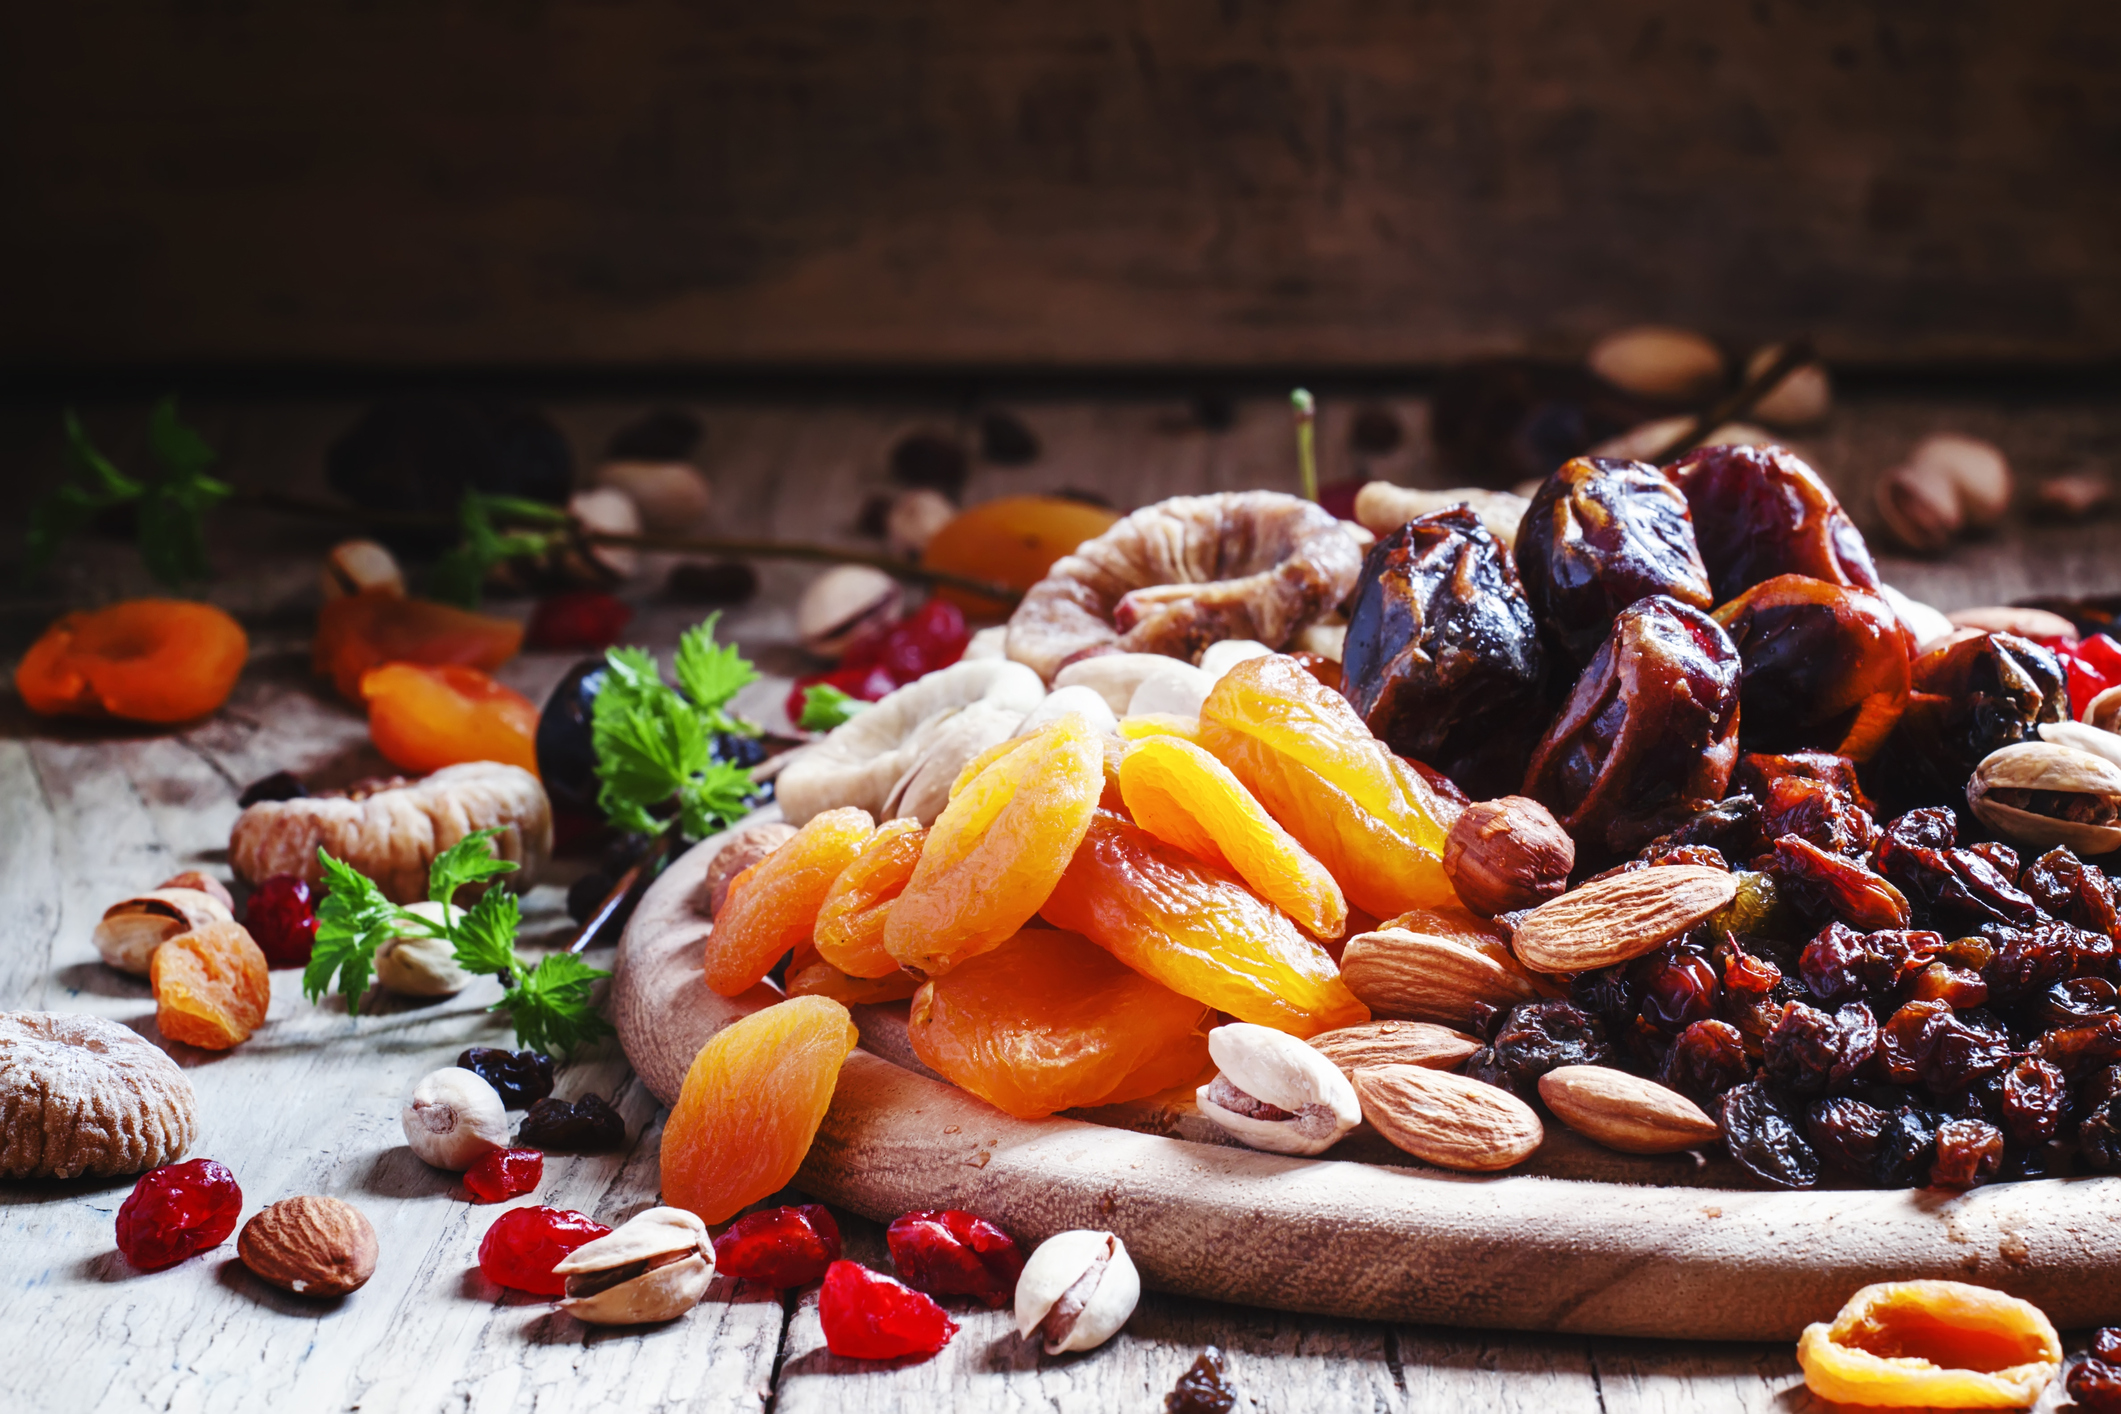 Dried apricots, dates, raisins and various nuts, vintage wooden background in a selective focus